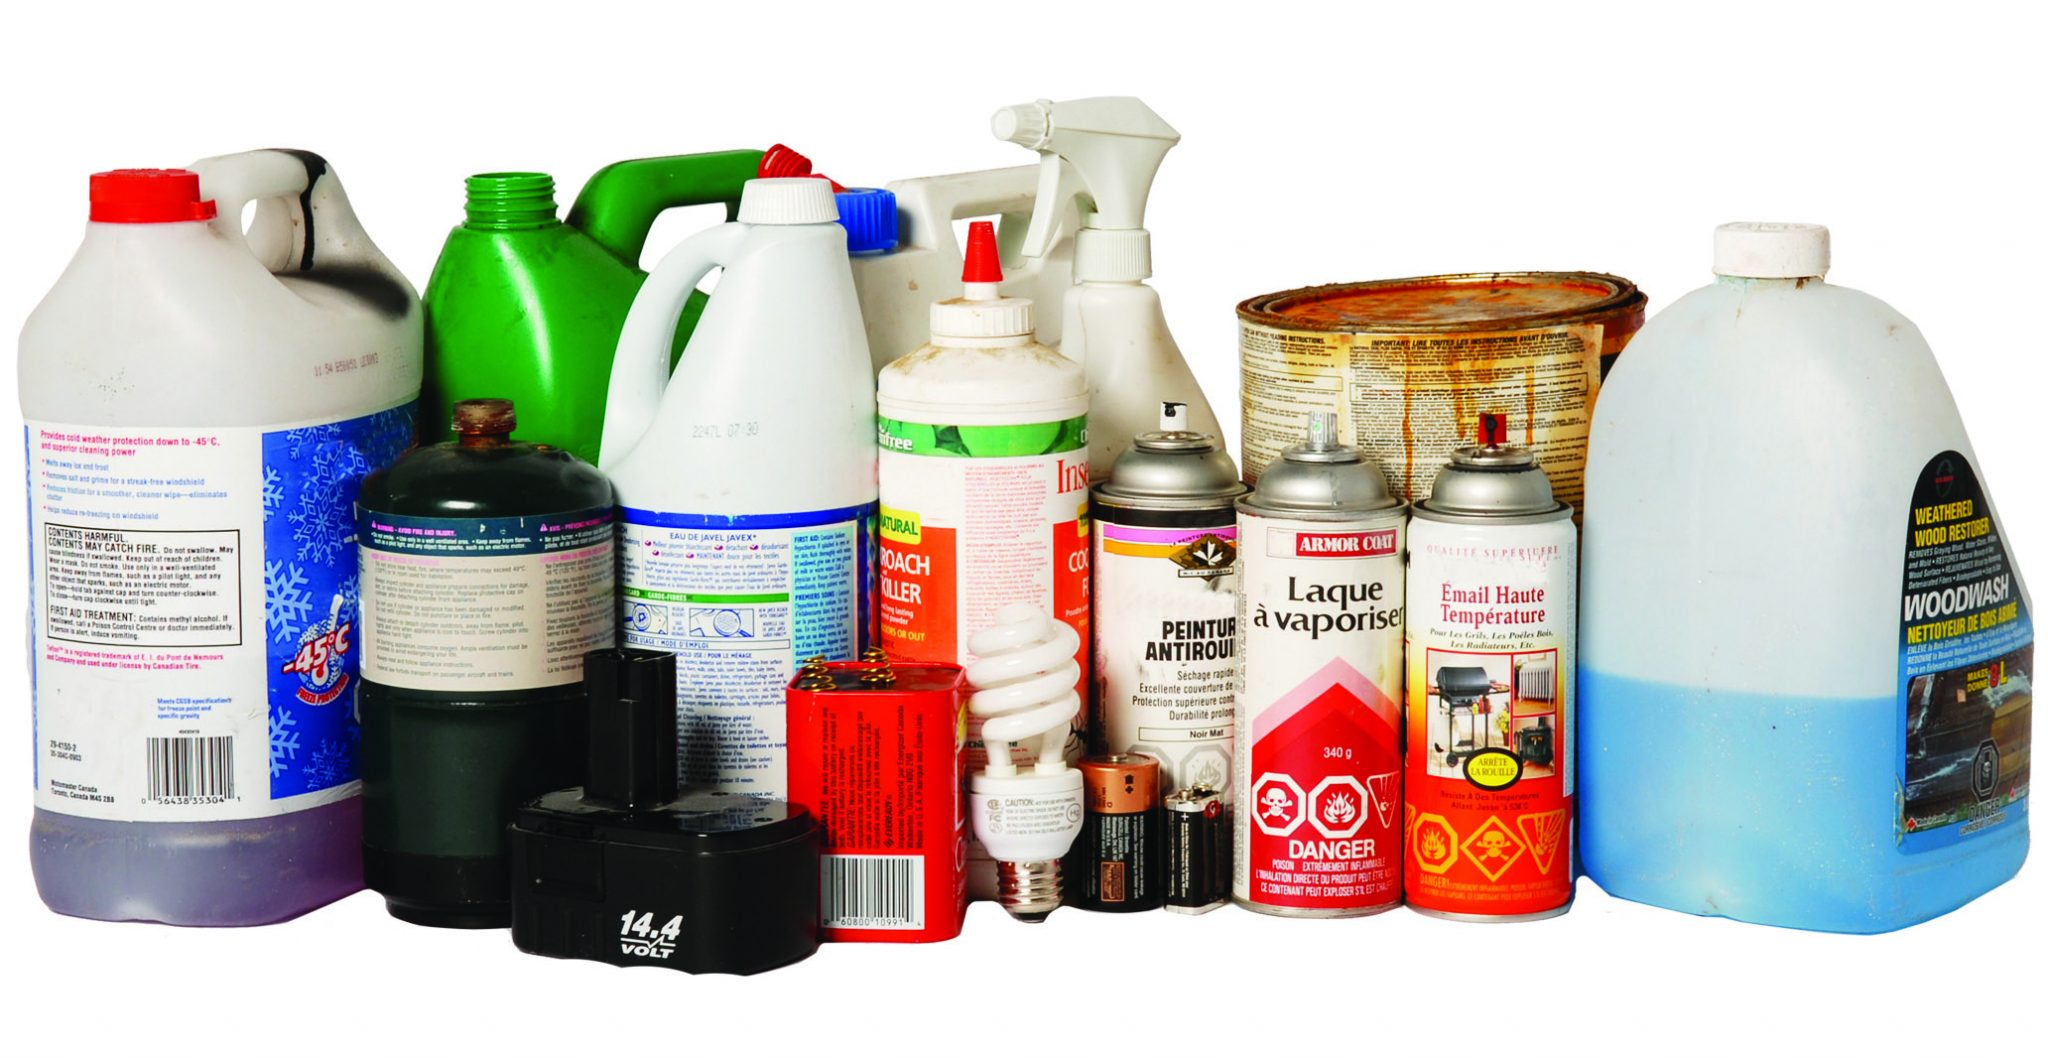 Household Hazardous Waste Collection Day is Saturday, March 17